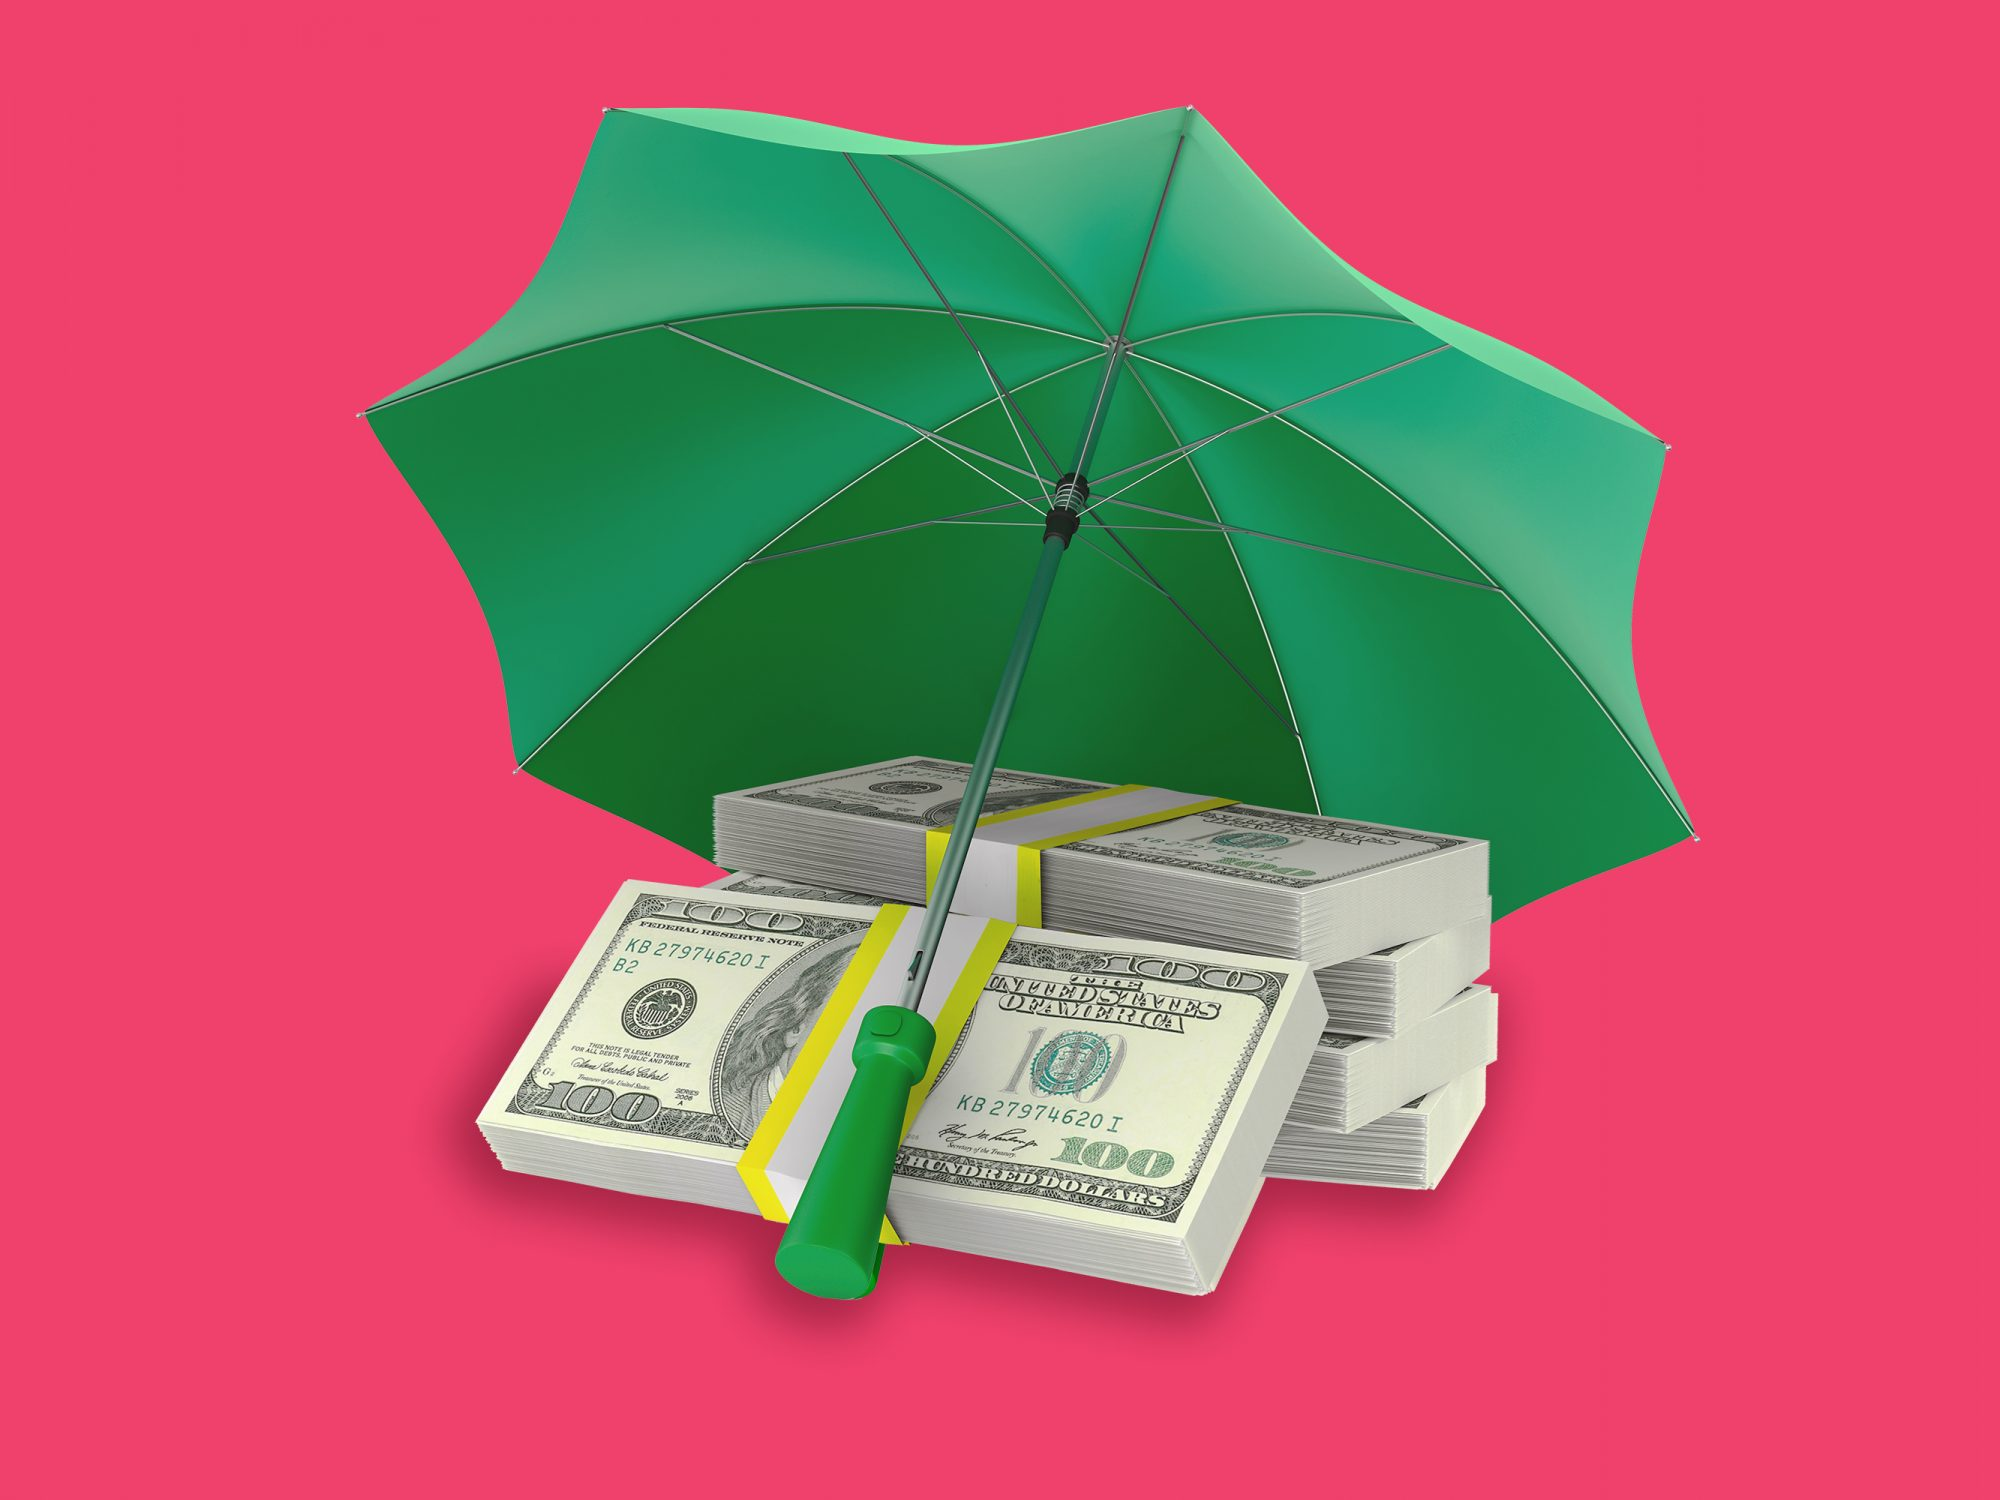 green umbrella covering money with a pink background